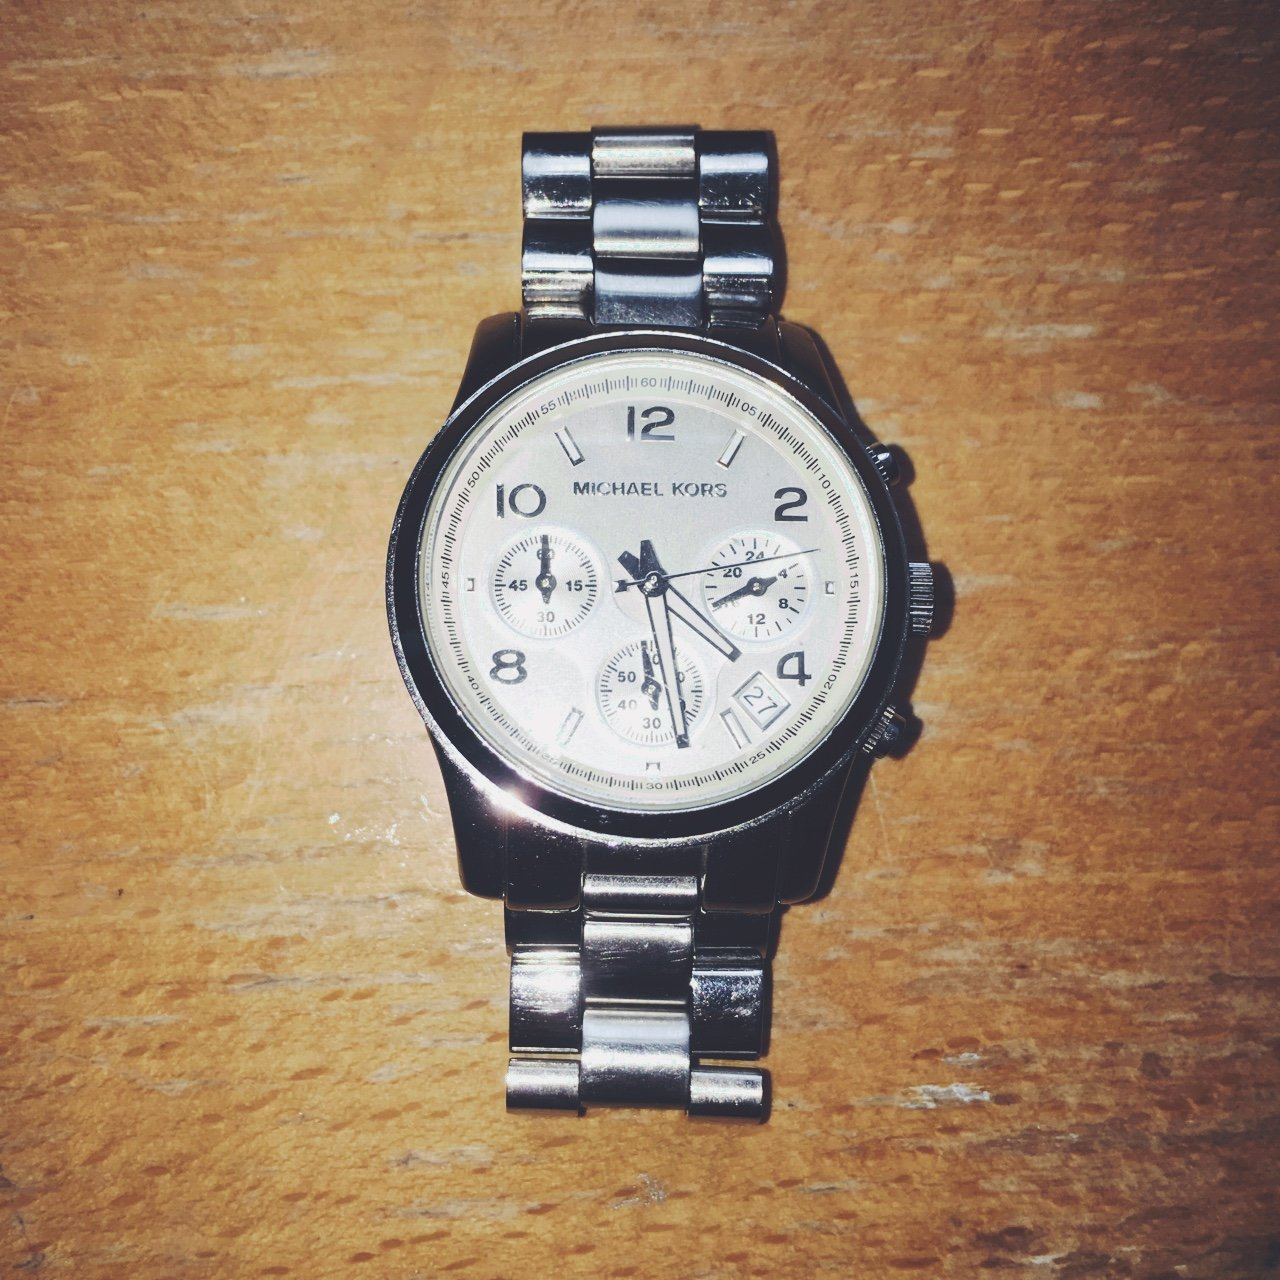 ef0ace14f9e8 Michael Kors silver watch. Three faces